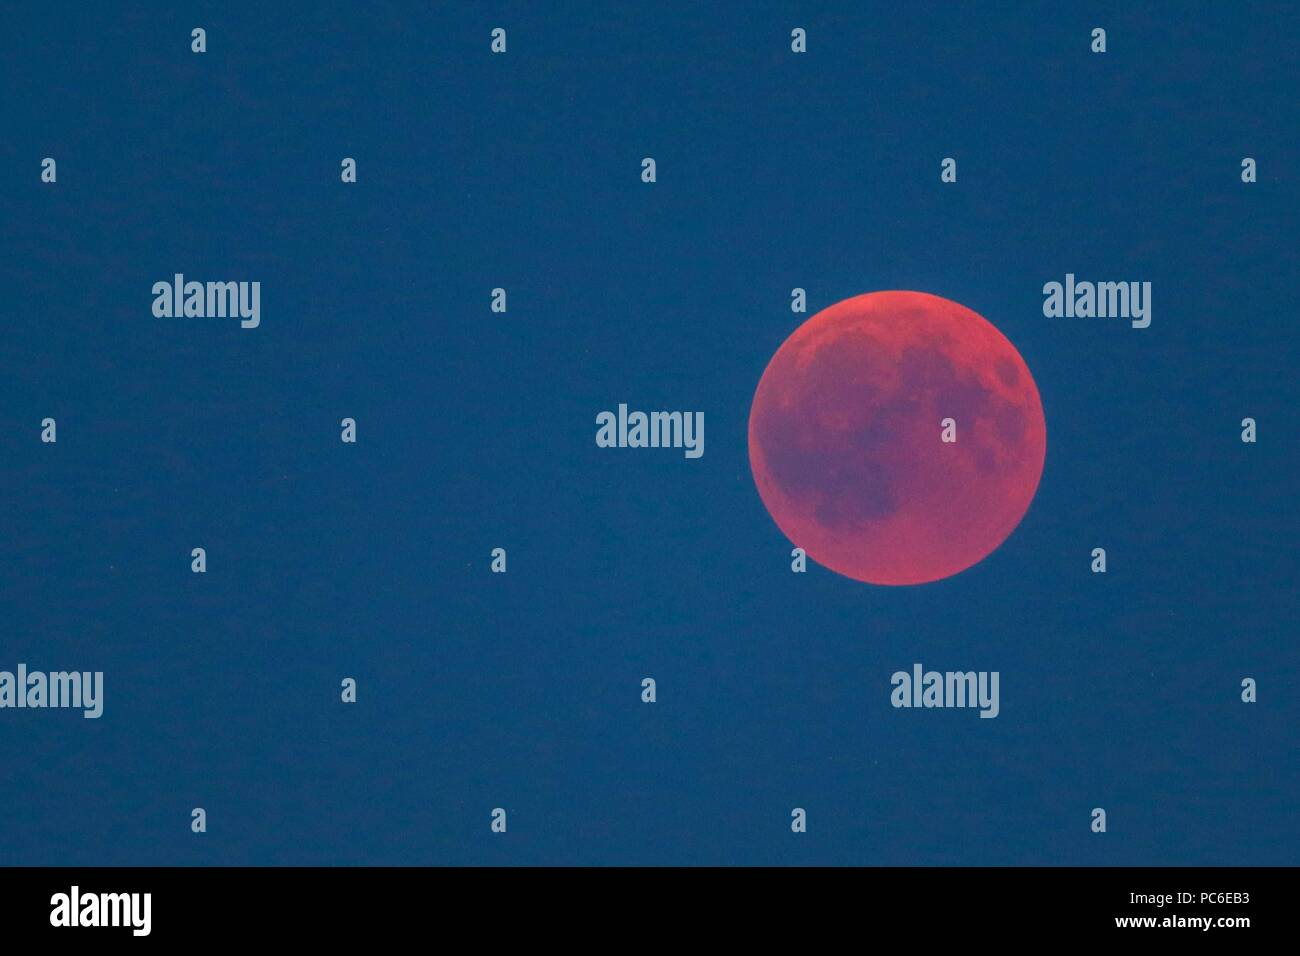 firo, Astronomy 1, 27.07.2018 celestial body, moon, bloodmoon, red, reddish moon, lunar eclipse, | usage worldwide - Stock Image